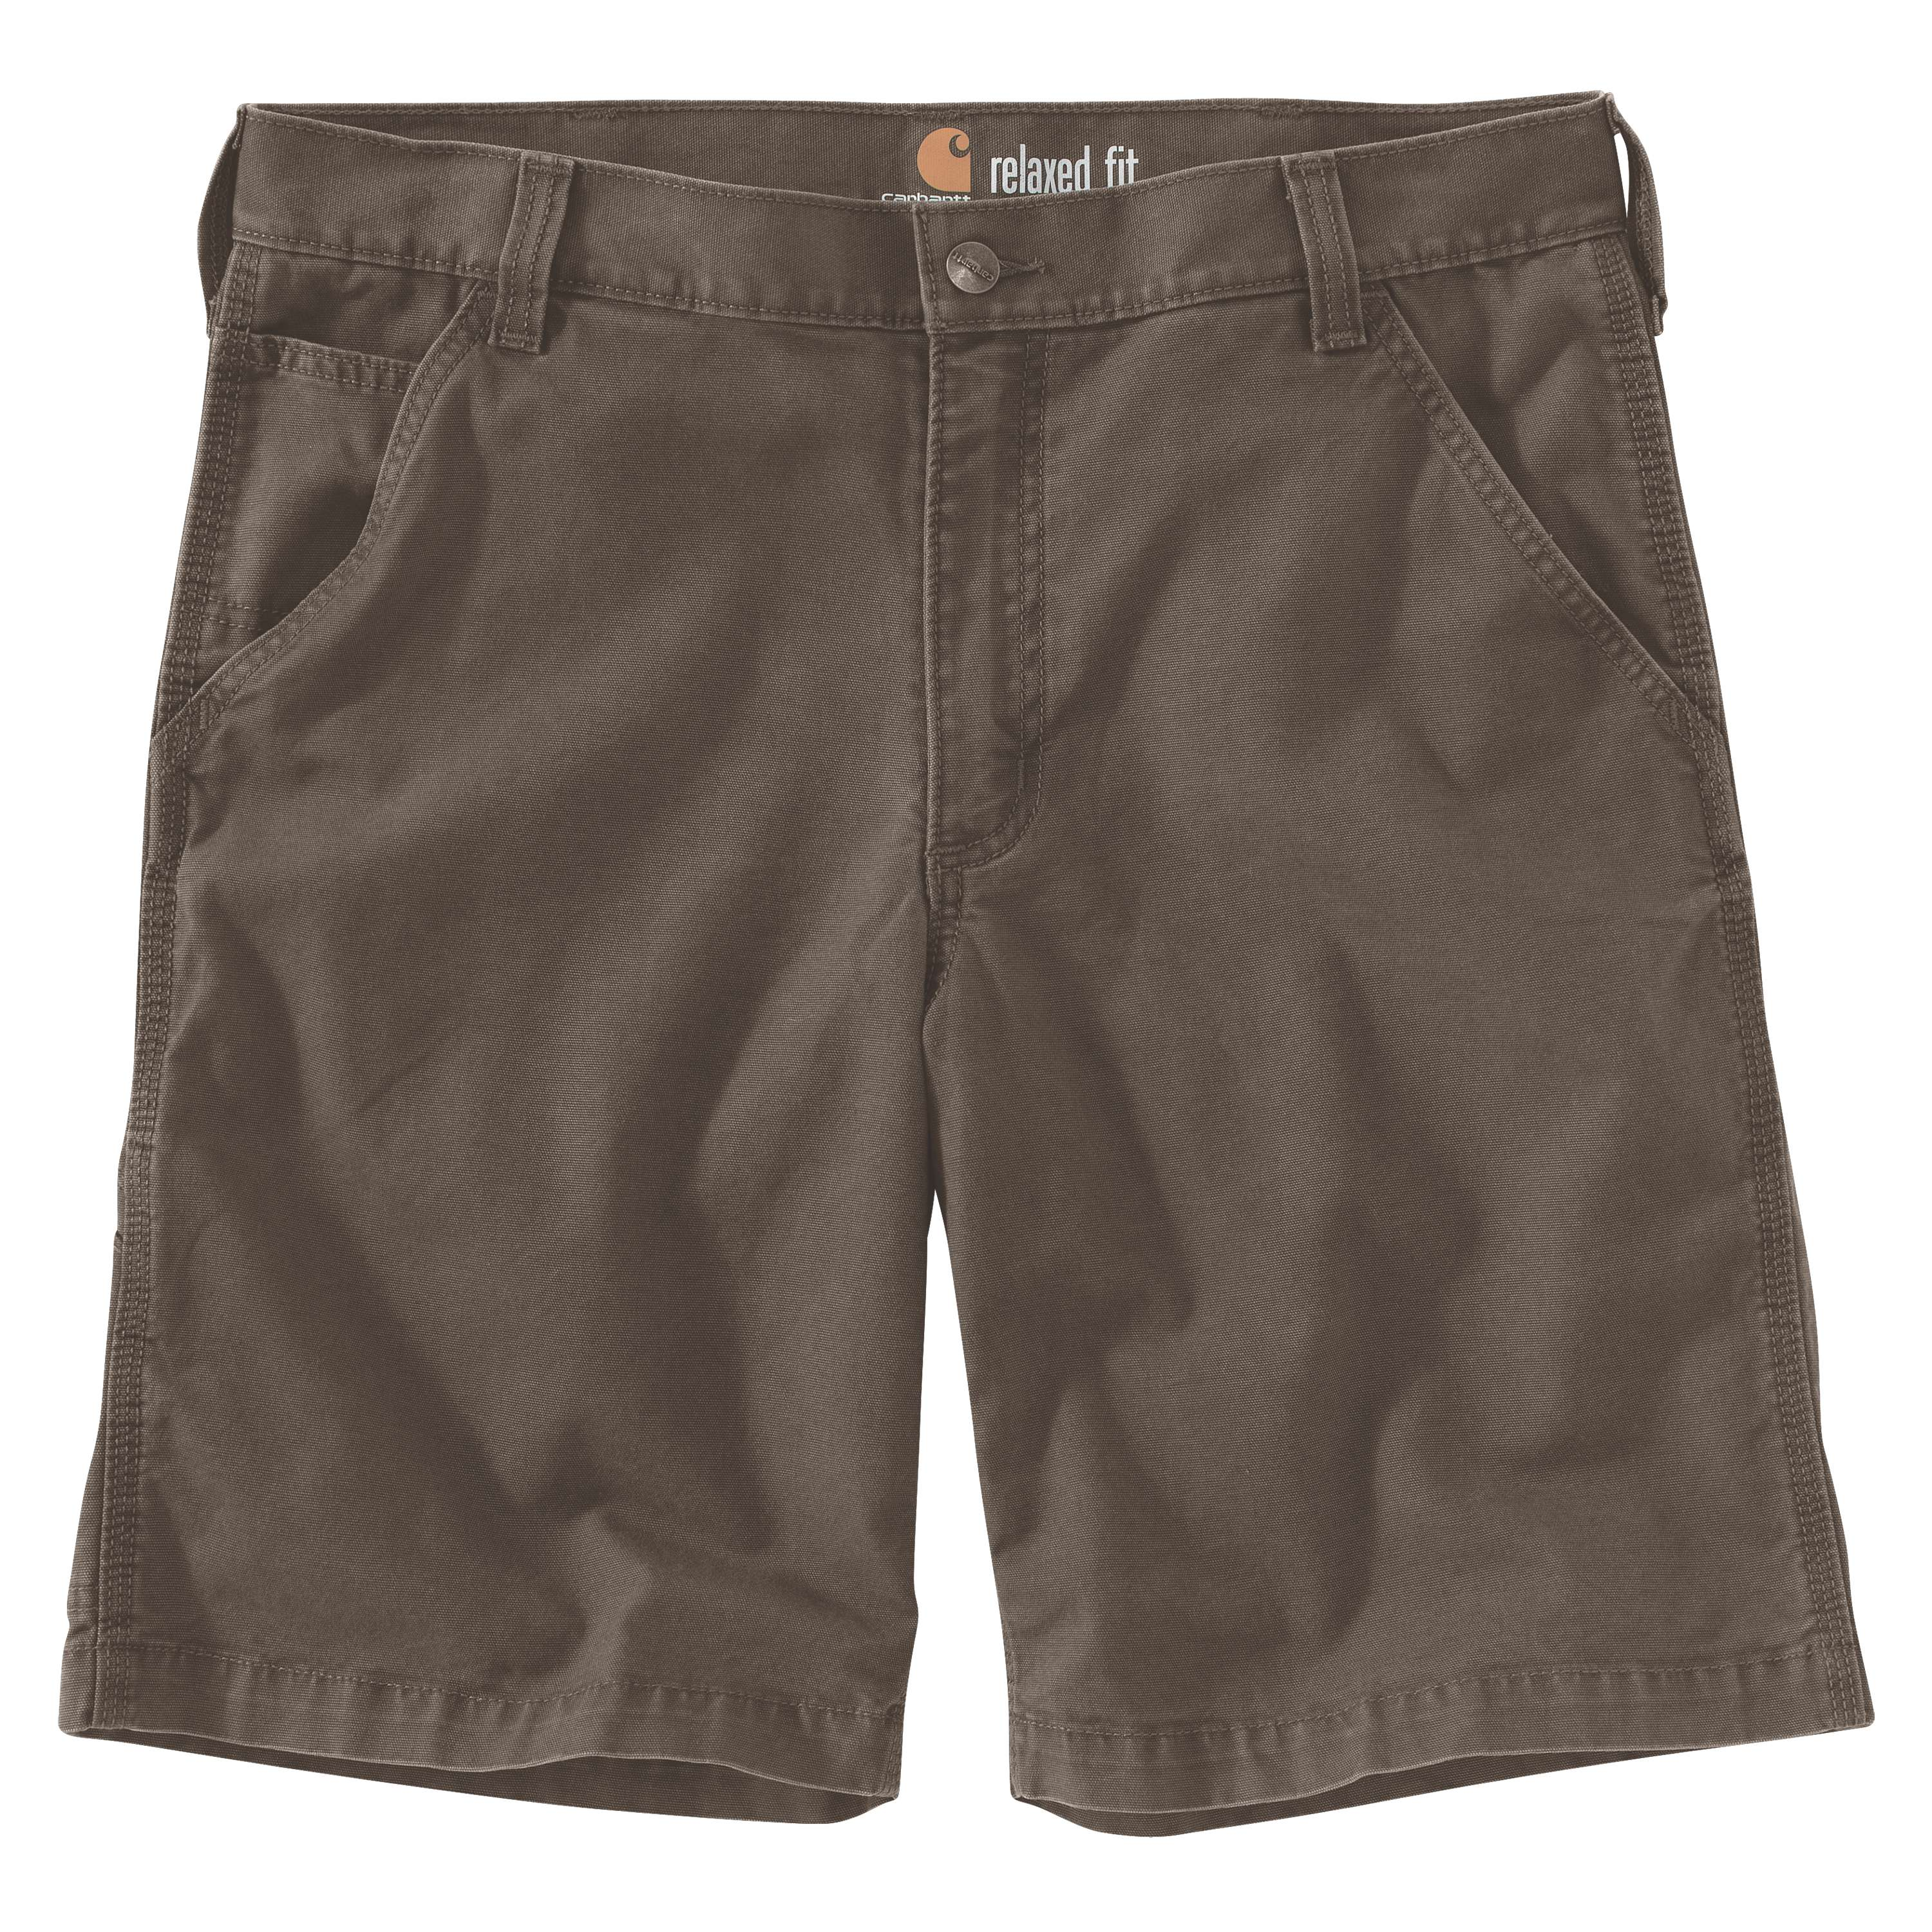 Men's Rugged Flex Rigby Shorts, Gray, large